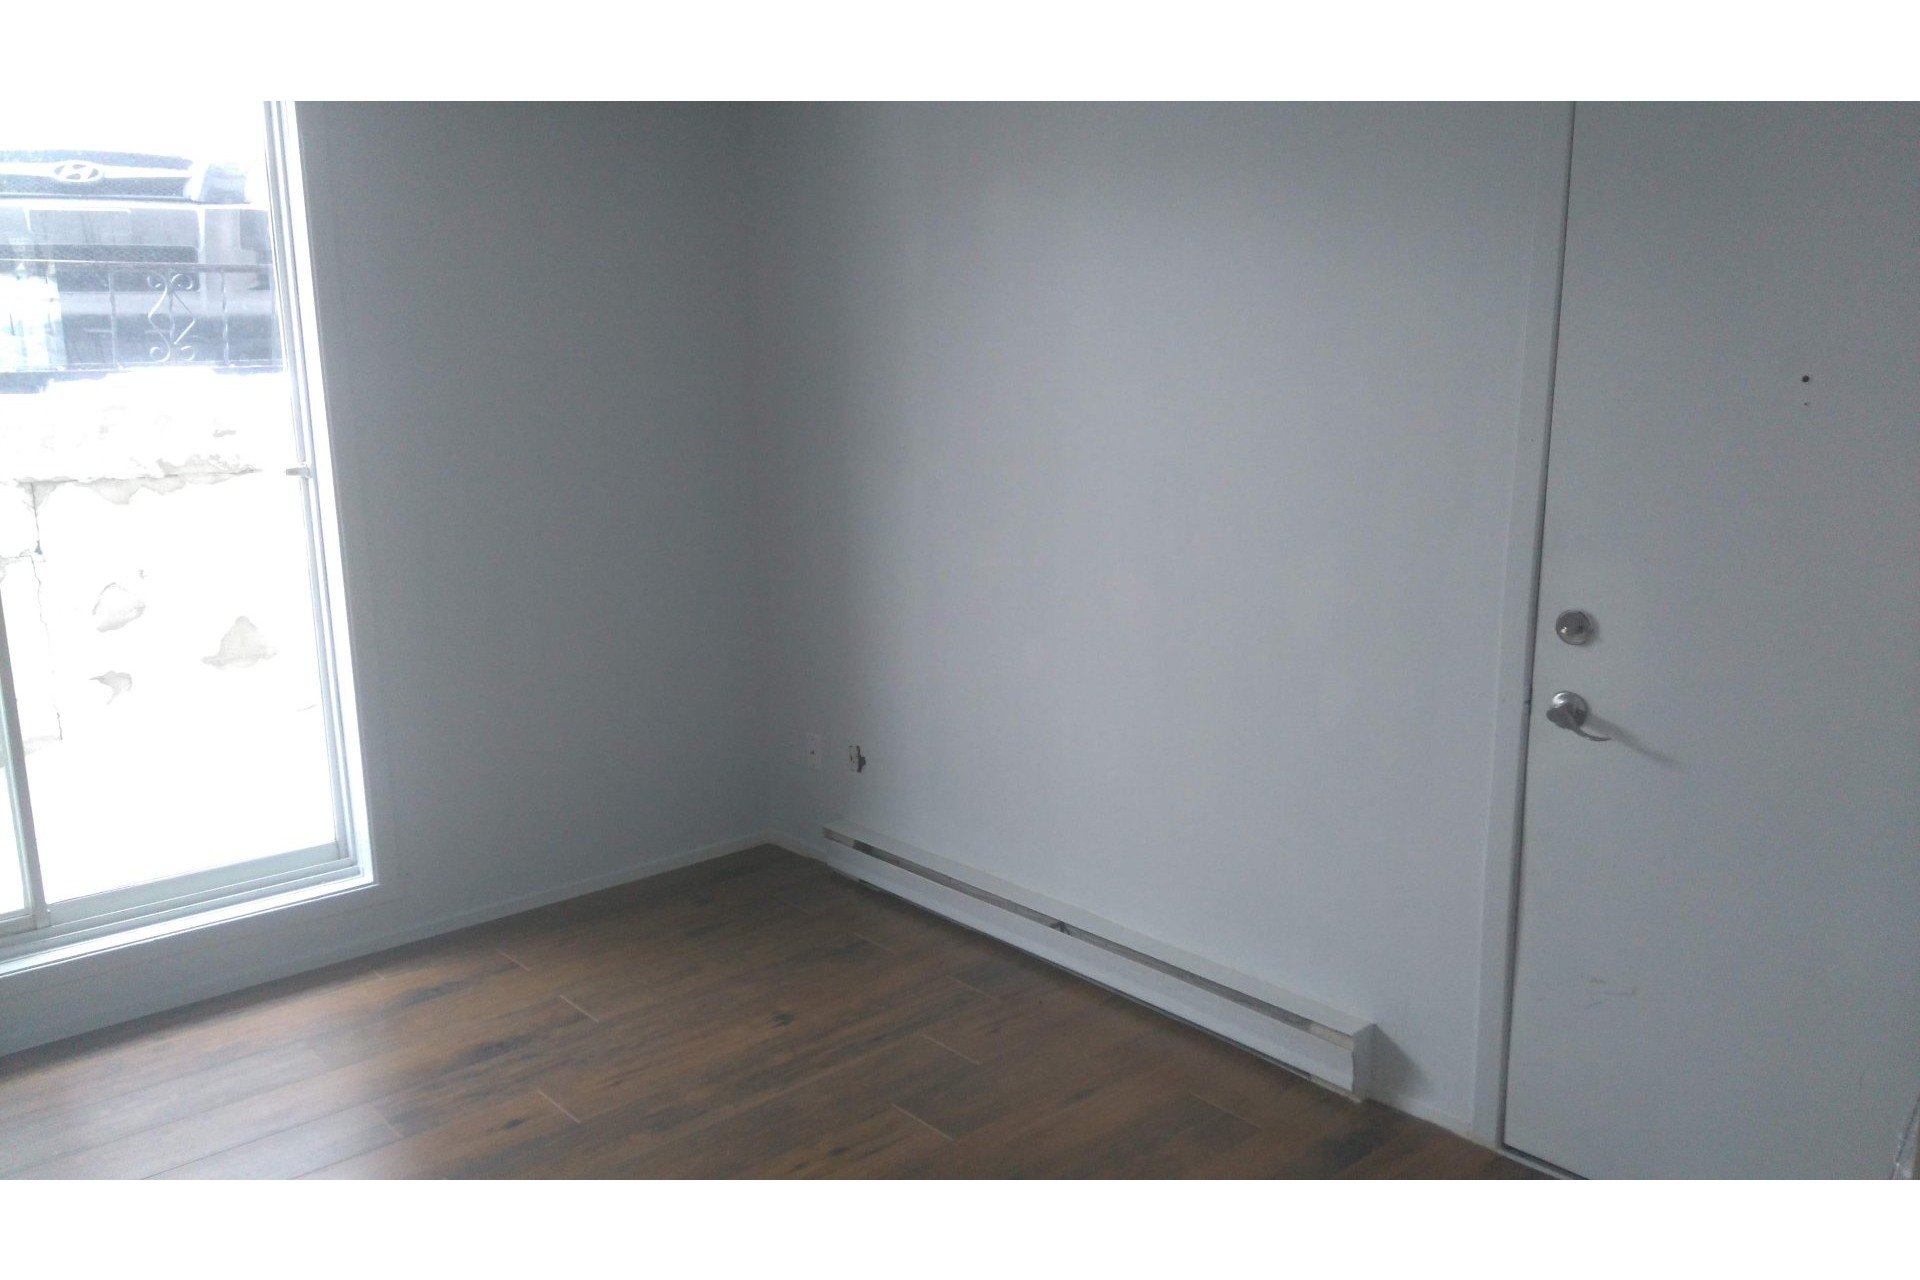 image 9 - Apartment For rent Sorel-Tracy - 5 rooms